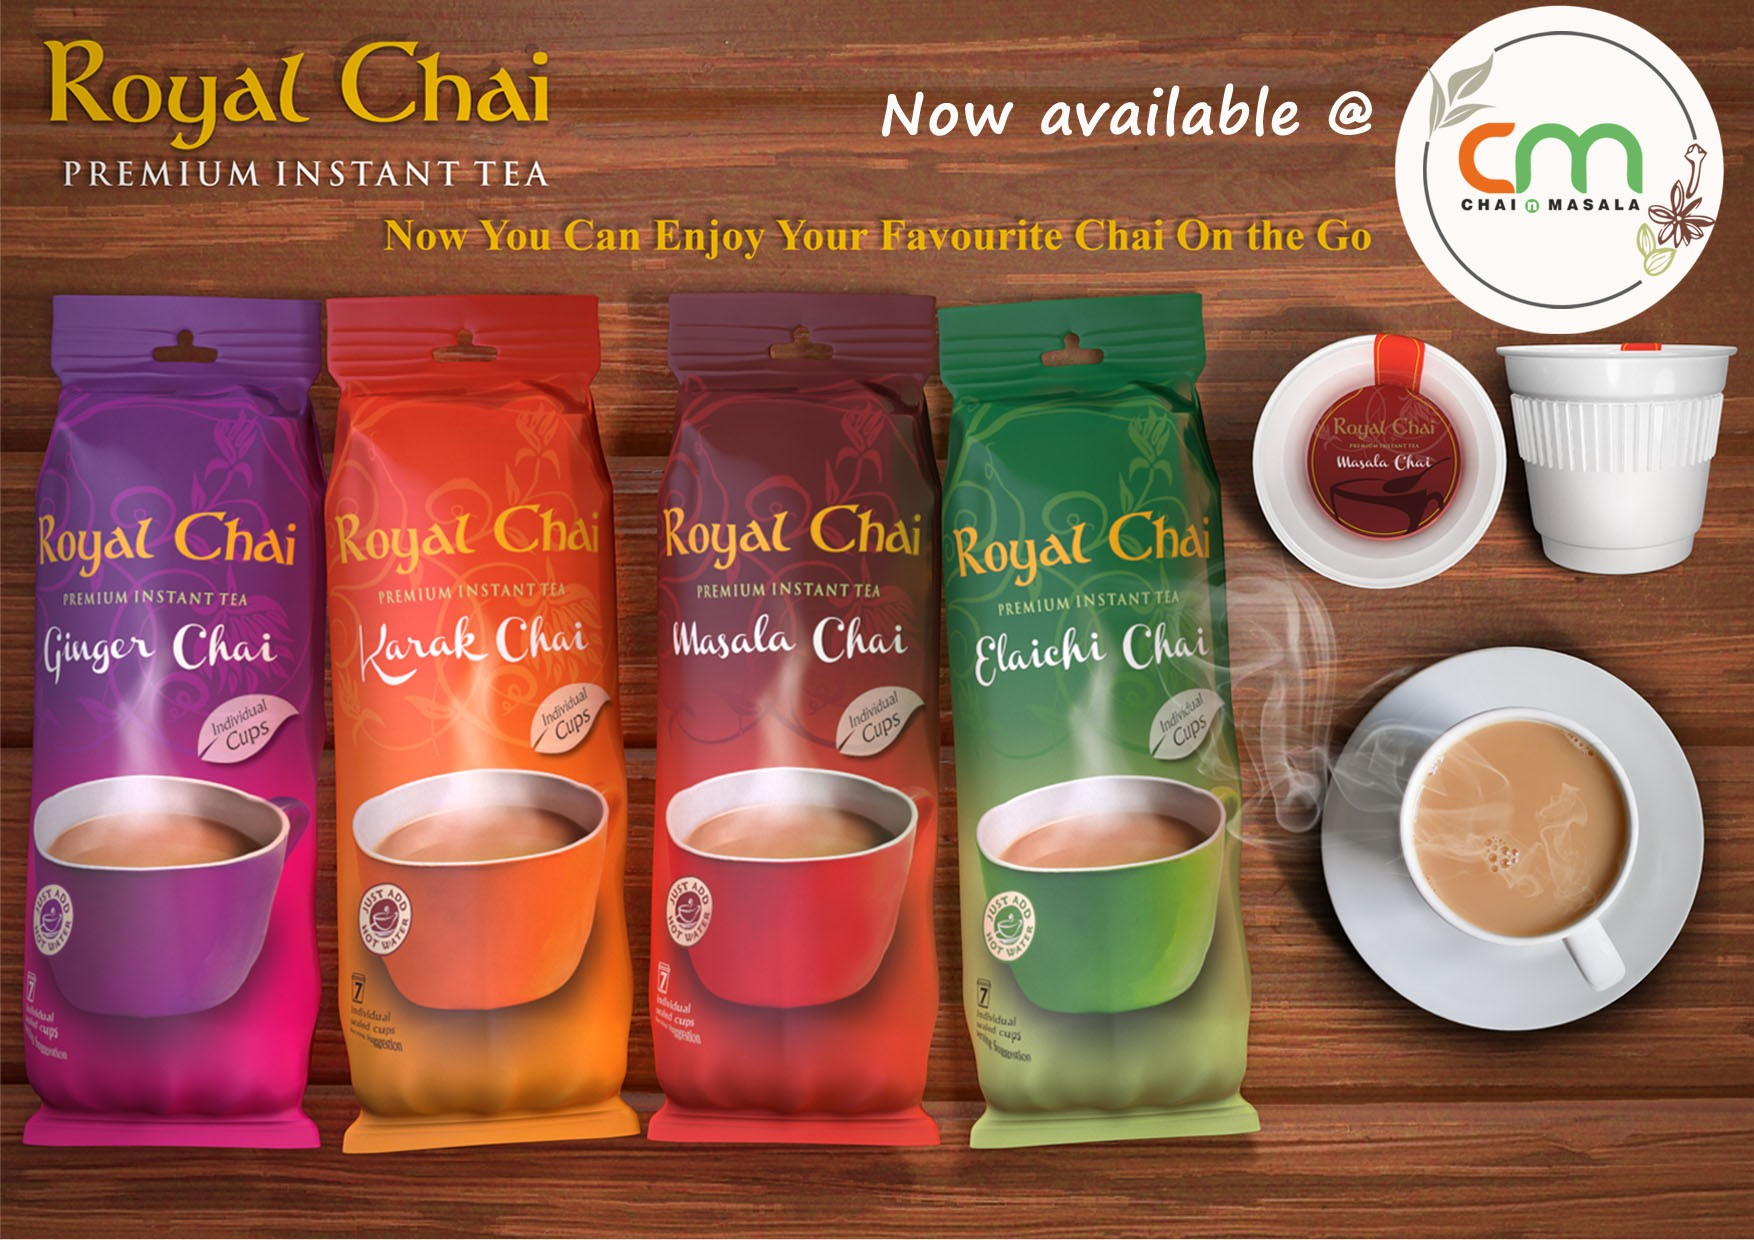 Royal Chai now available here!